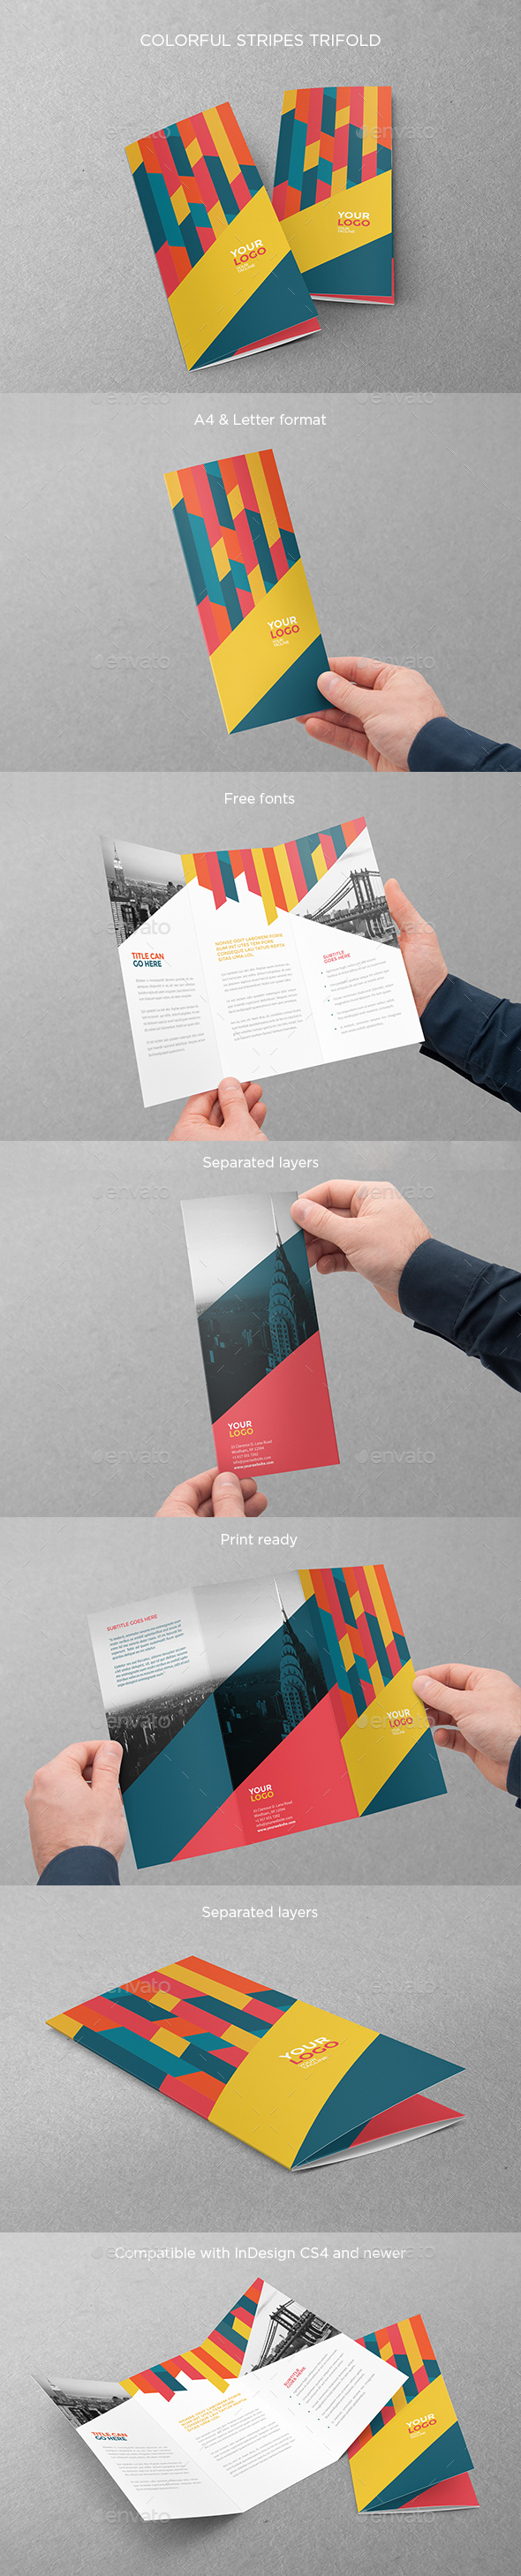 Colorful Stripes Trifold - Brochures Print Templates